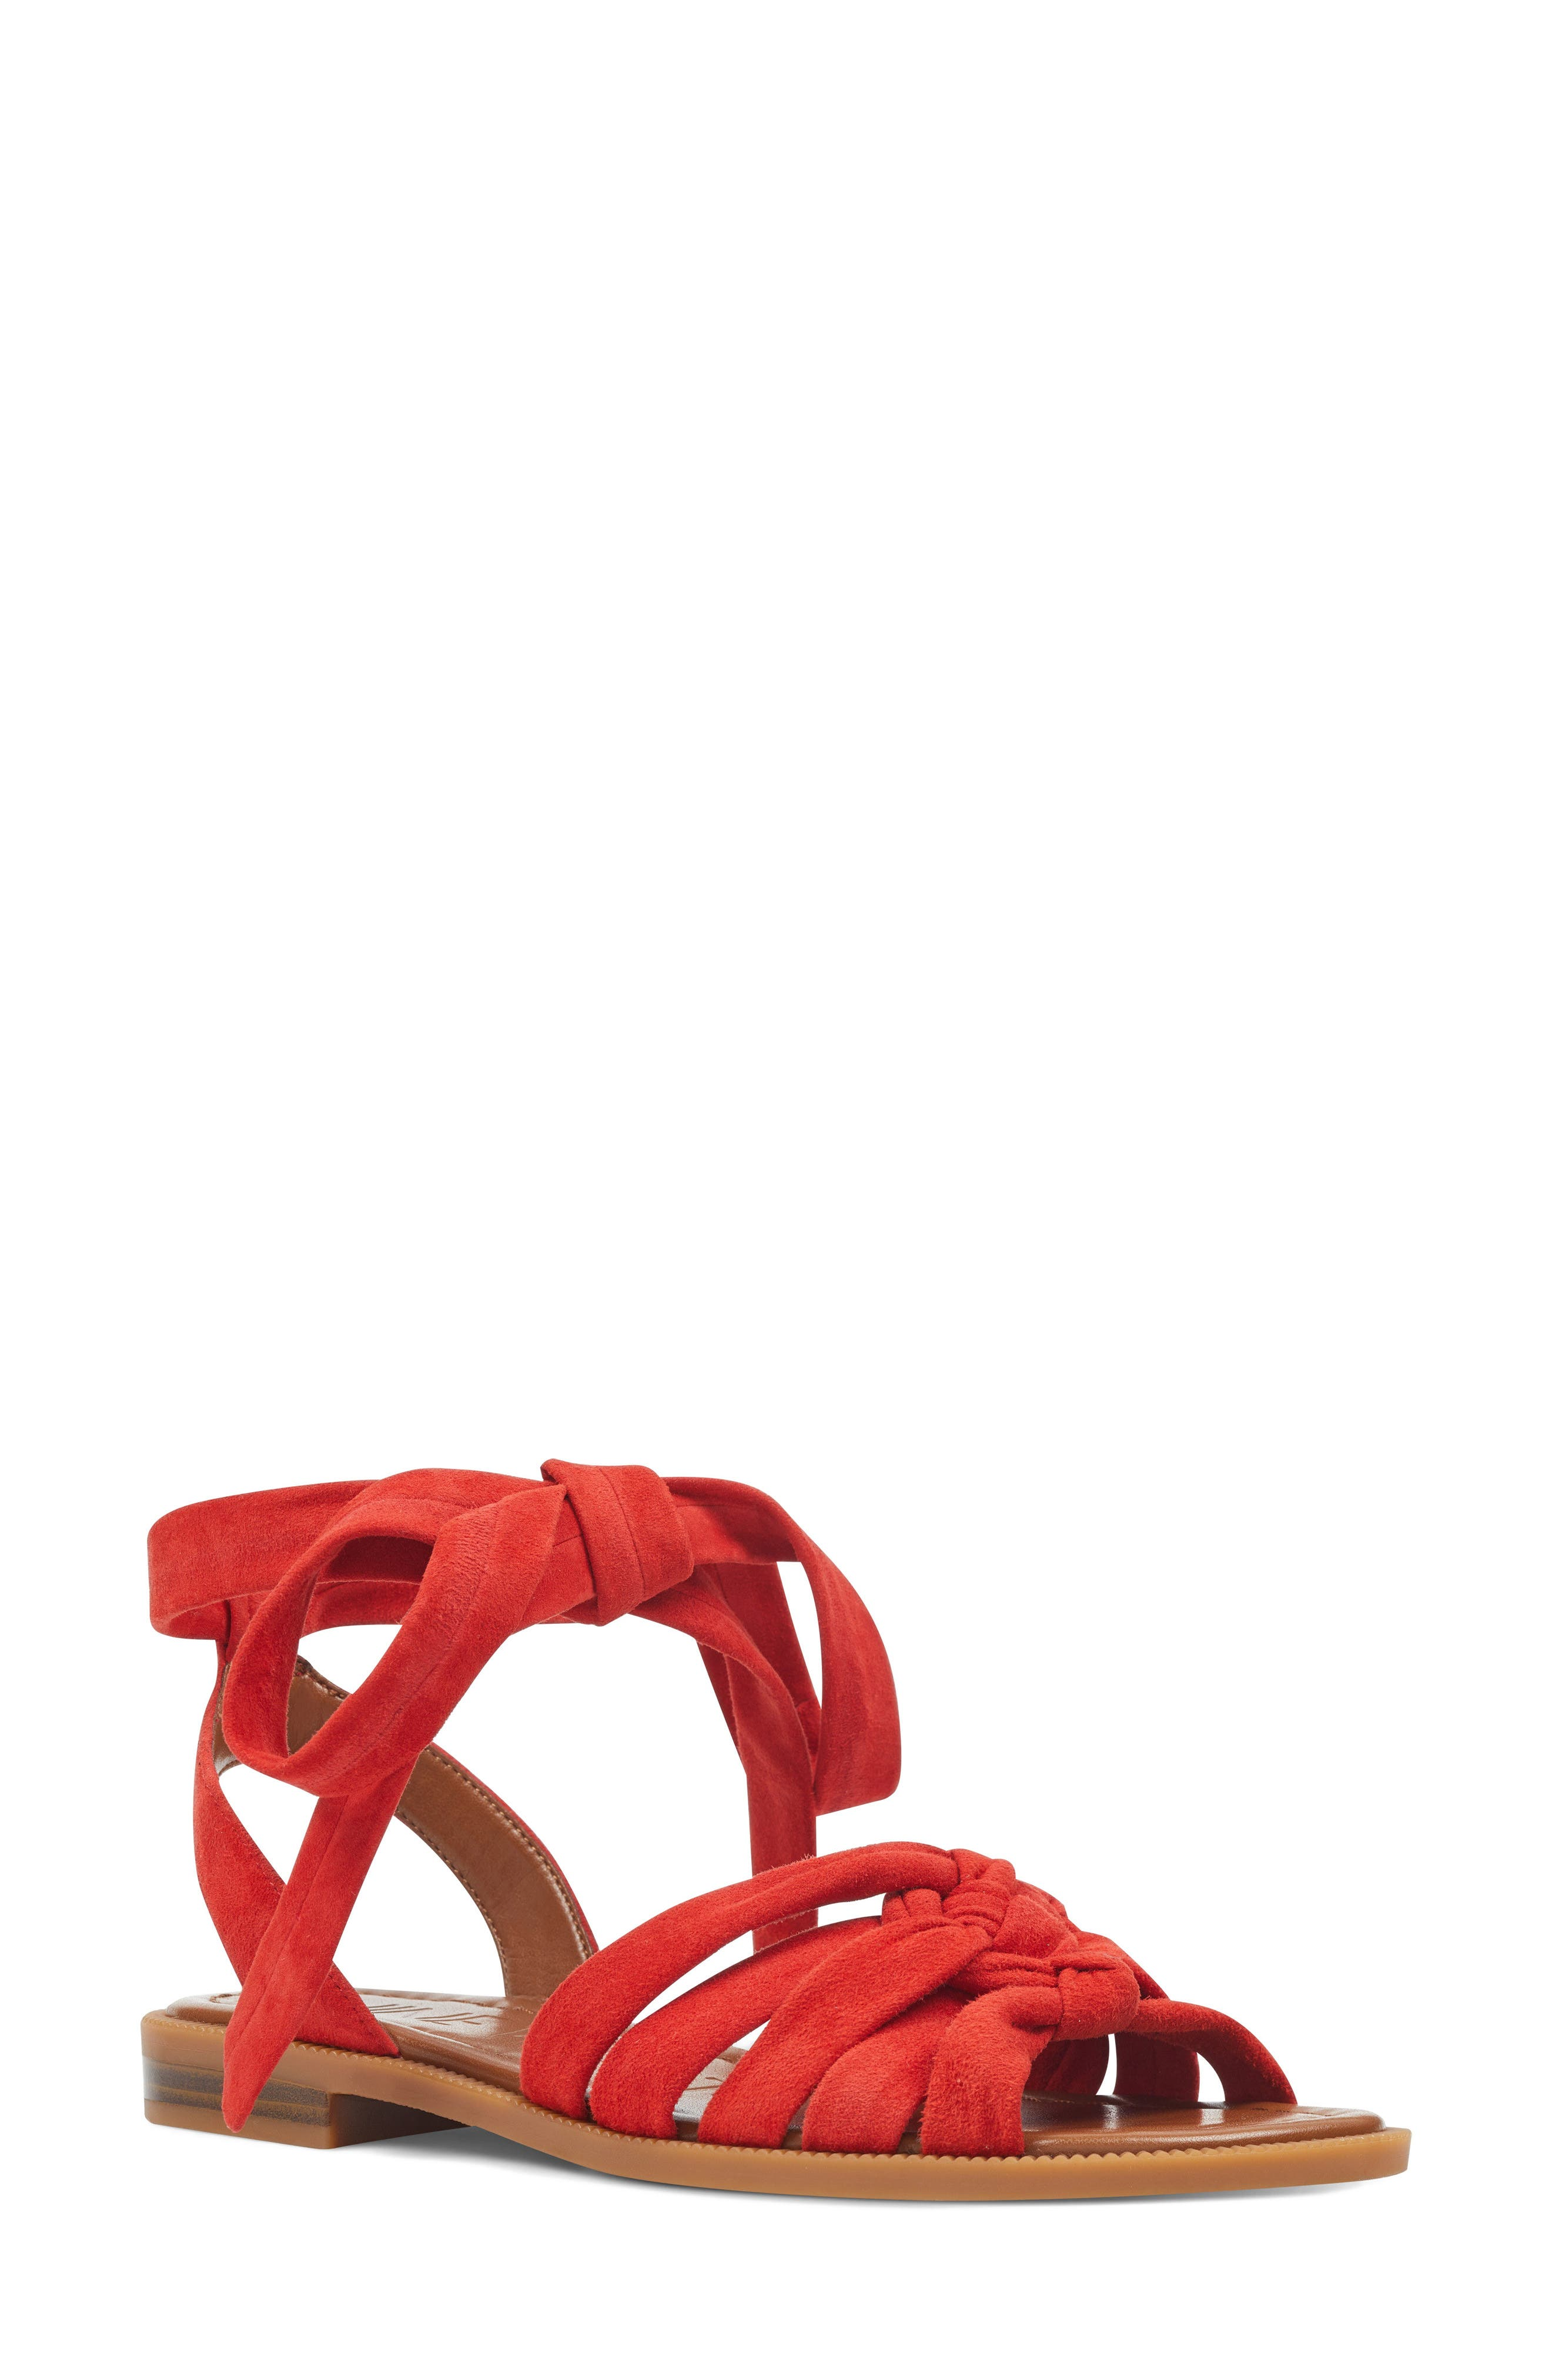 Xameera Knotted Sandal,                         Main,                         color, Red Suede